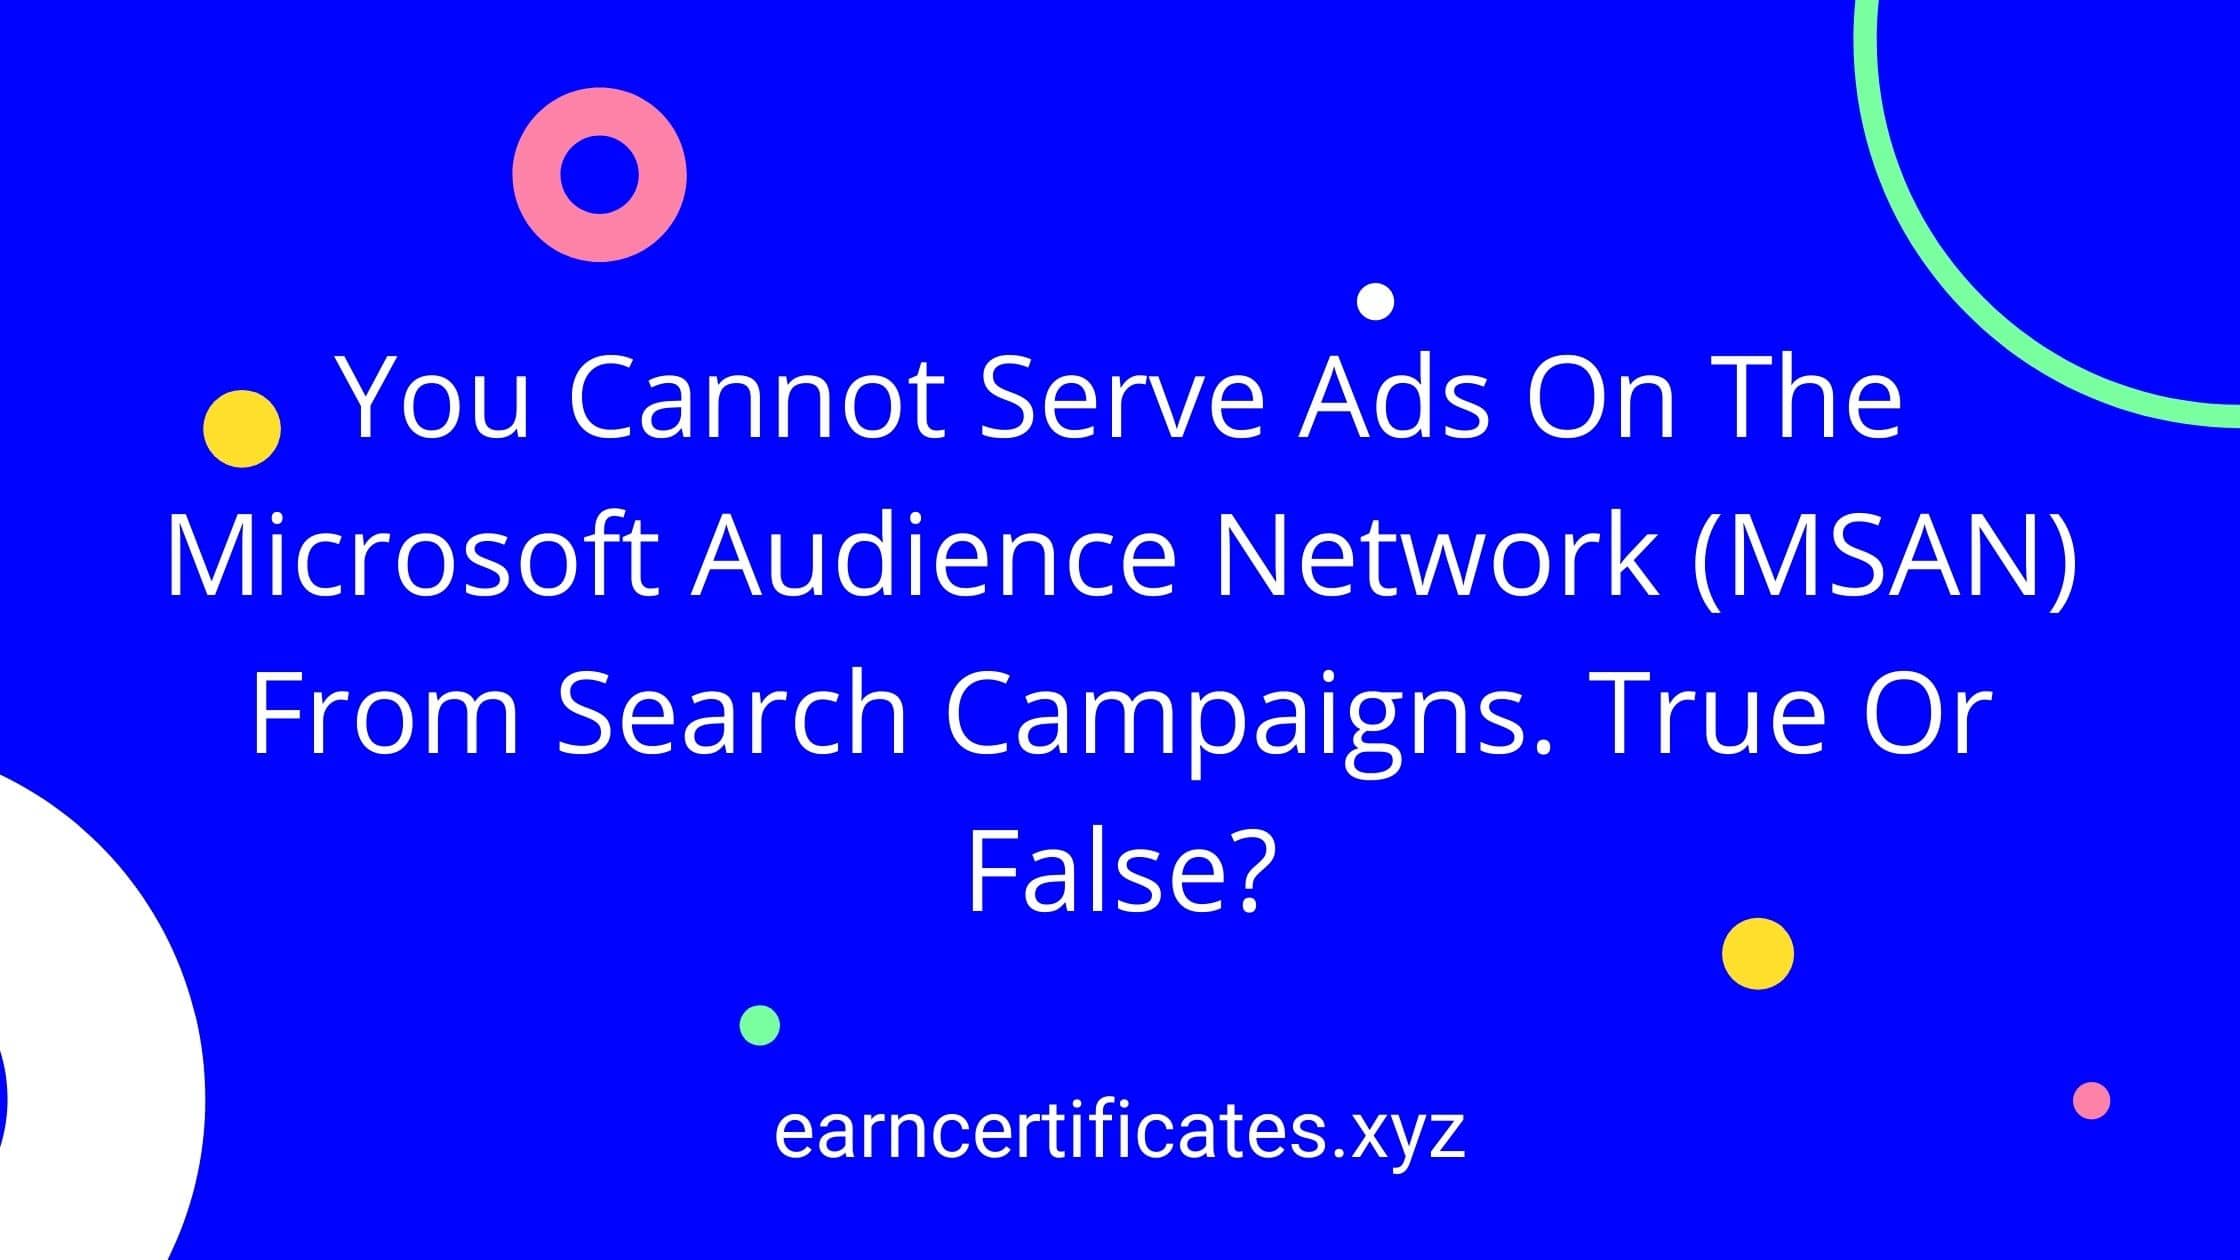 You Cannot Serve Ads On The Microsoft Audience Network (MSAN) From Search Campaigns. True Or False?